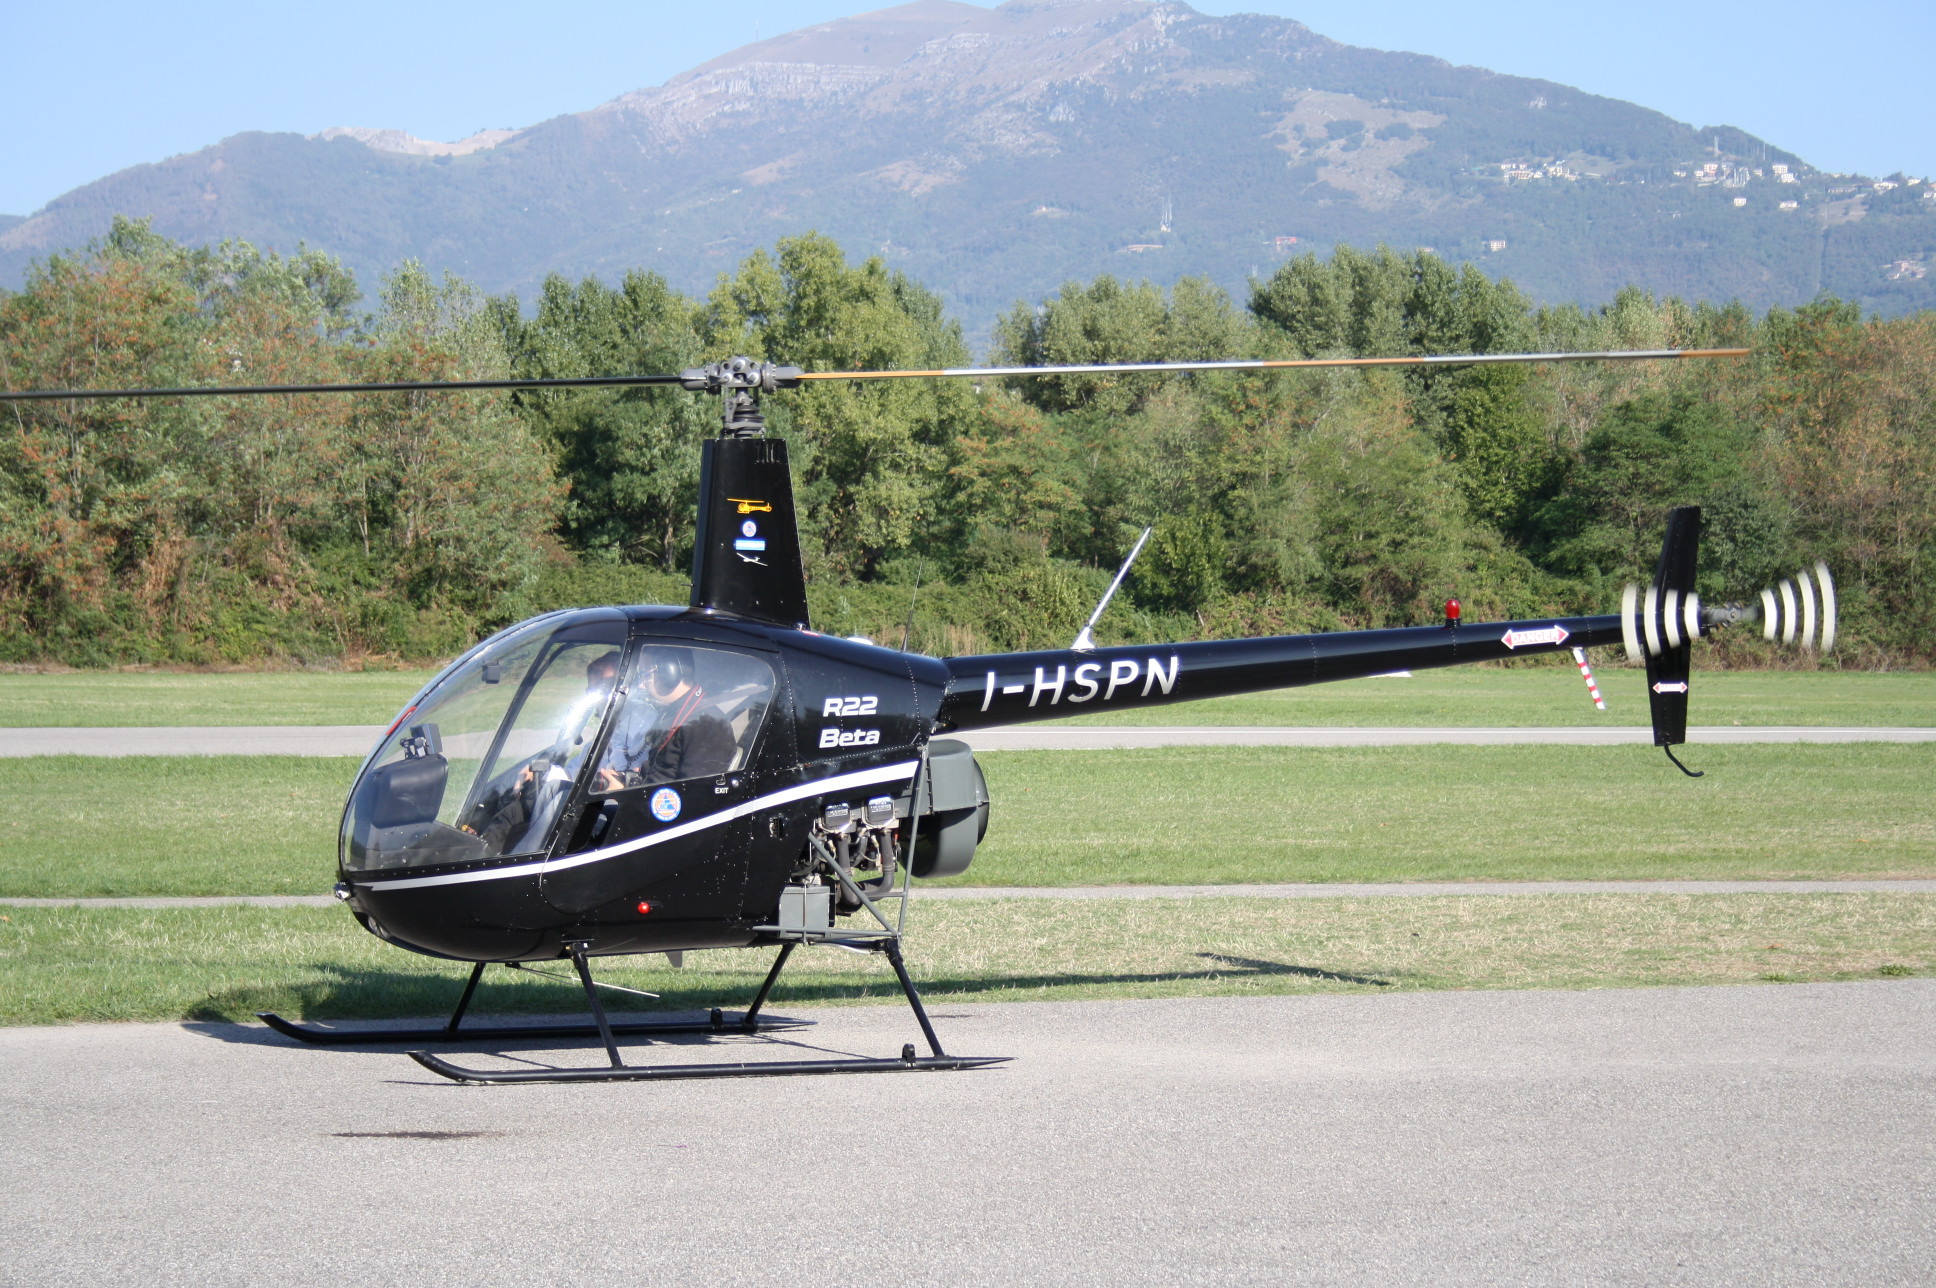 Elicottero R22 : R beta helispin s r l